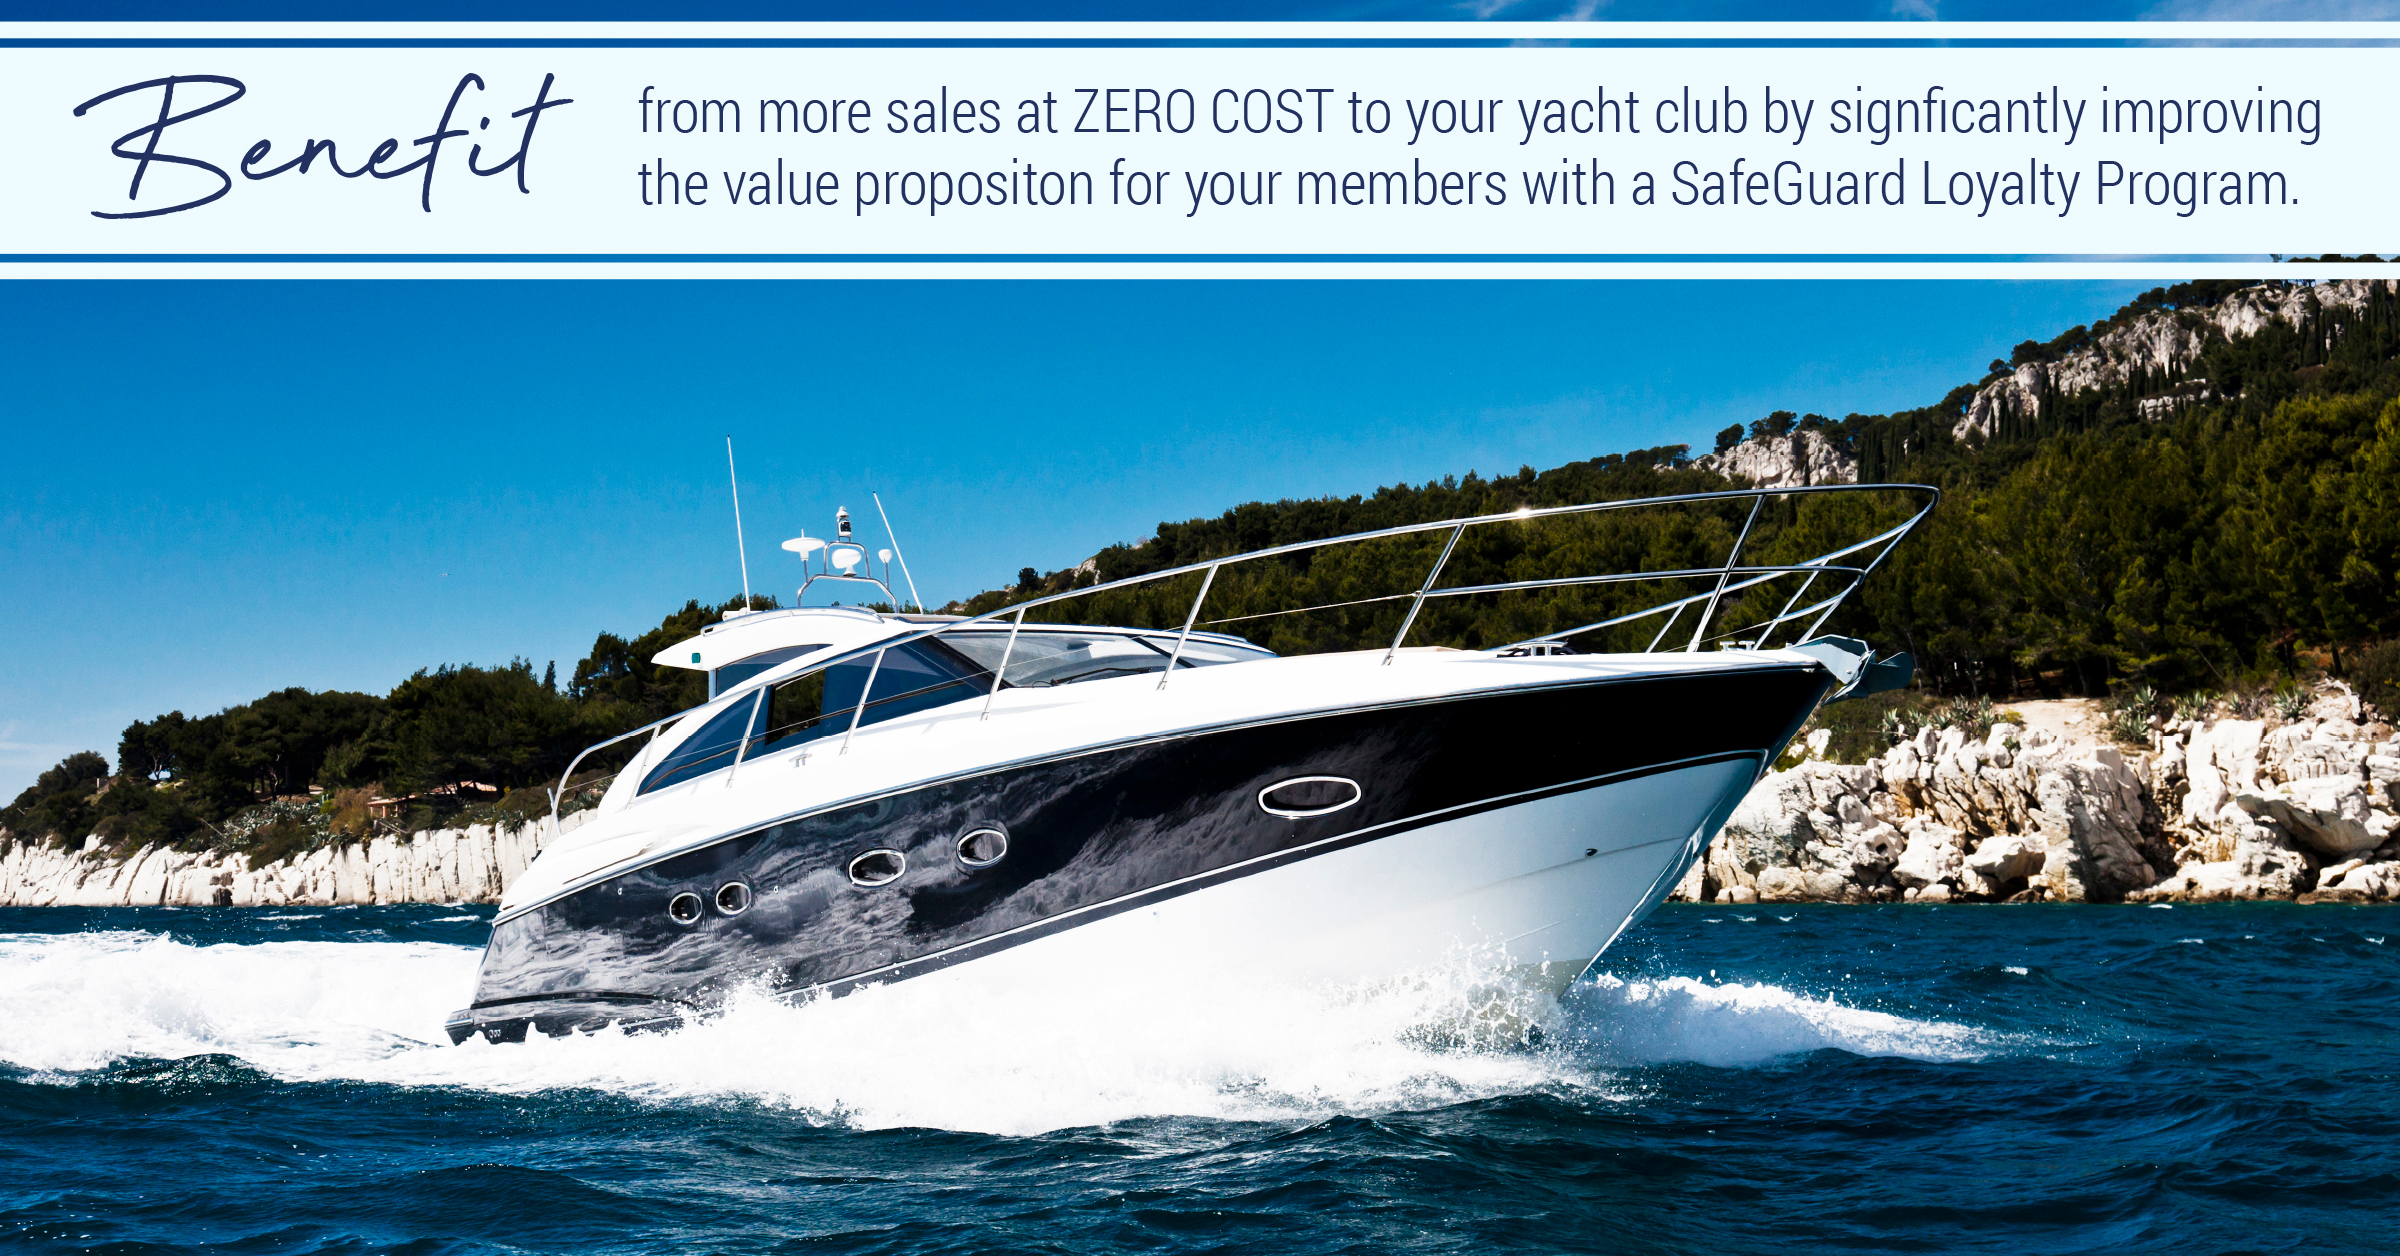 SafeGuard Loyalty Program for Yacht Clubs